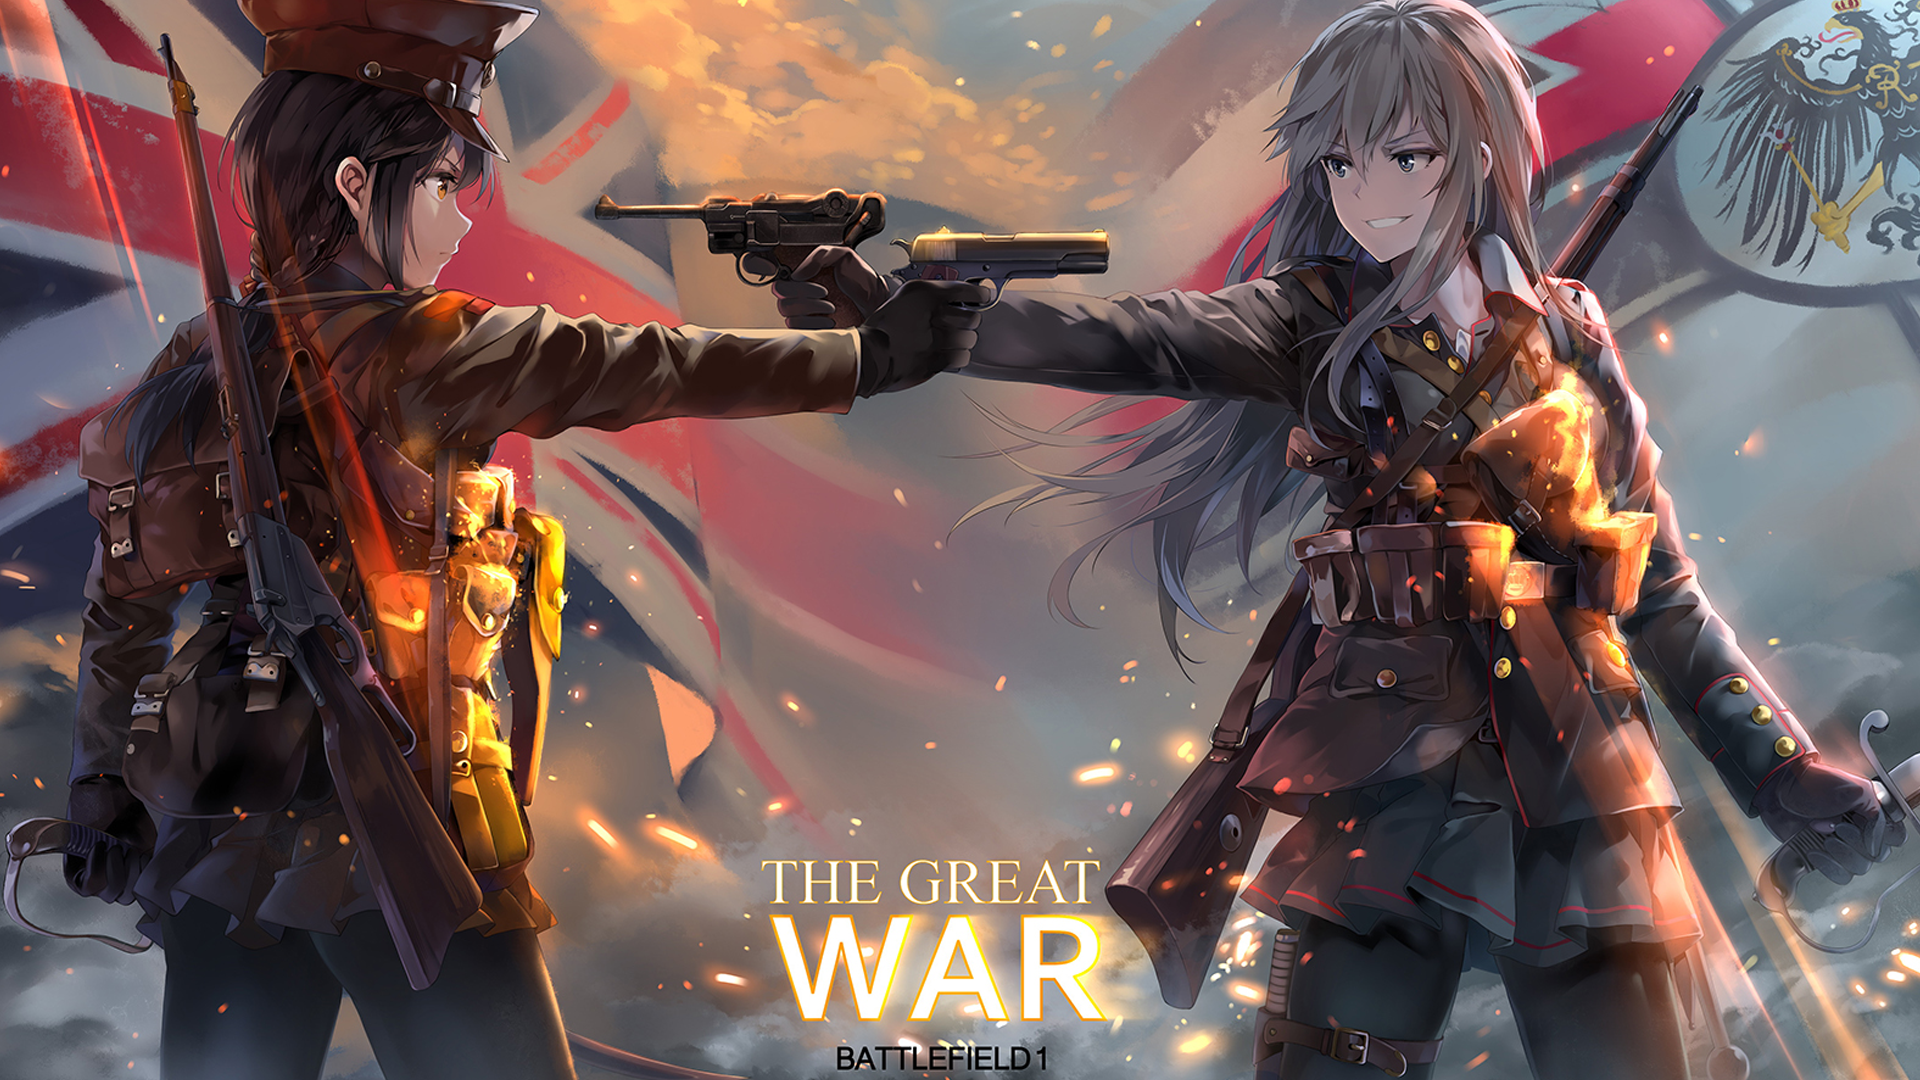 The Great War - Battlefield 1 anime, Battlefield, The Great War, арт